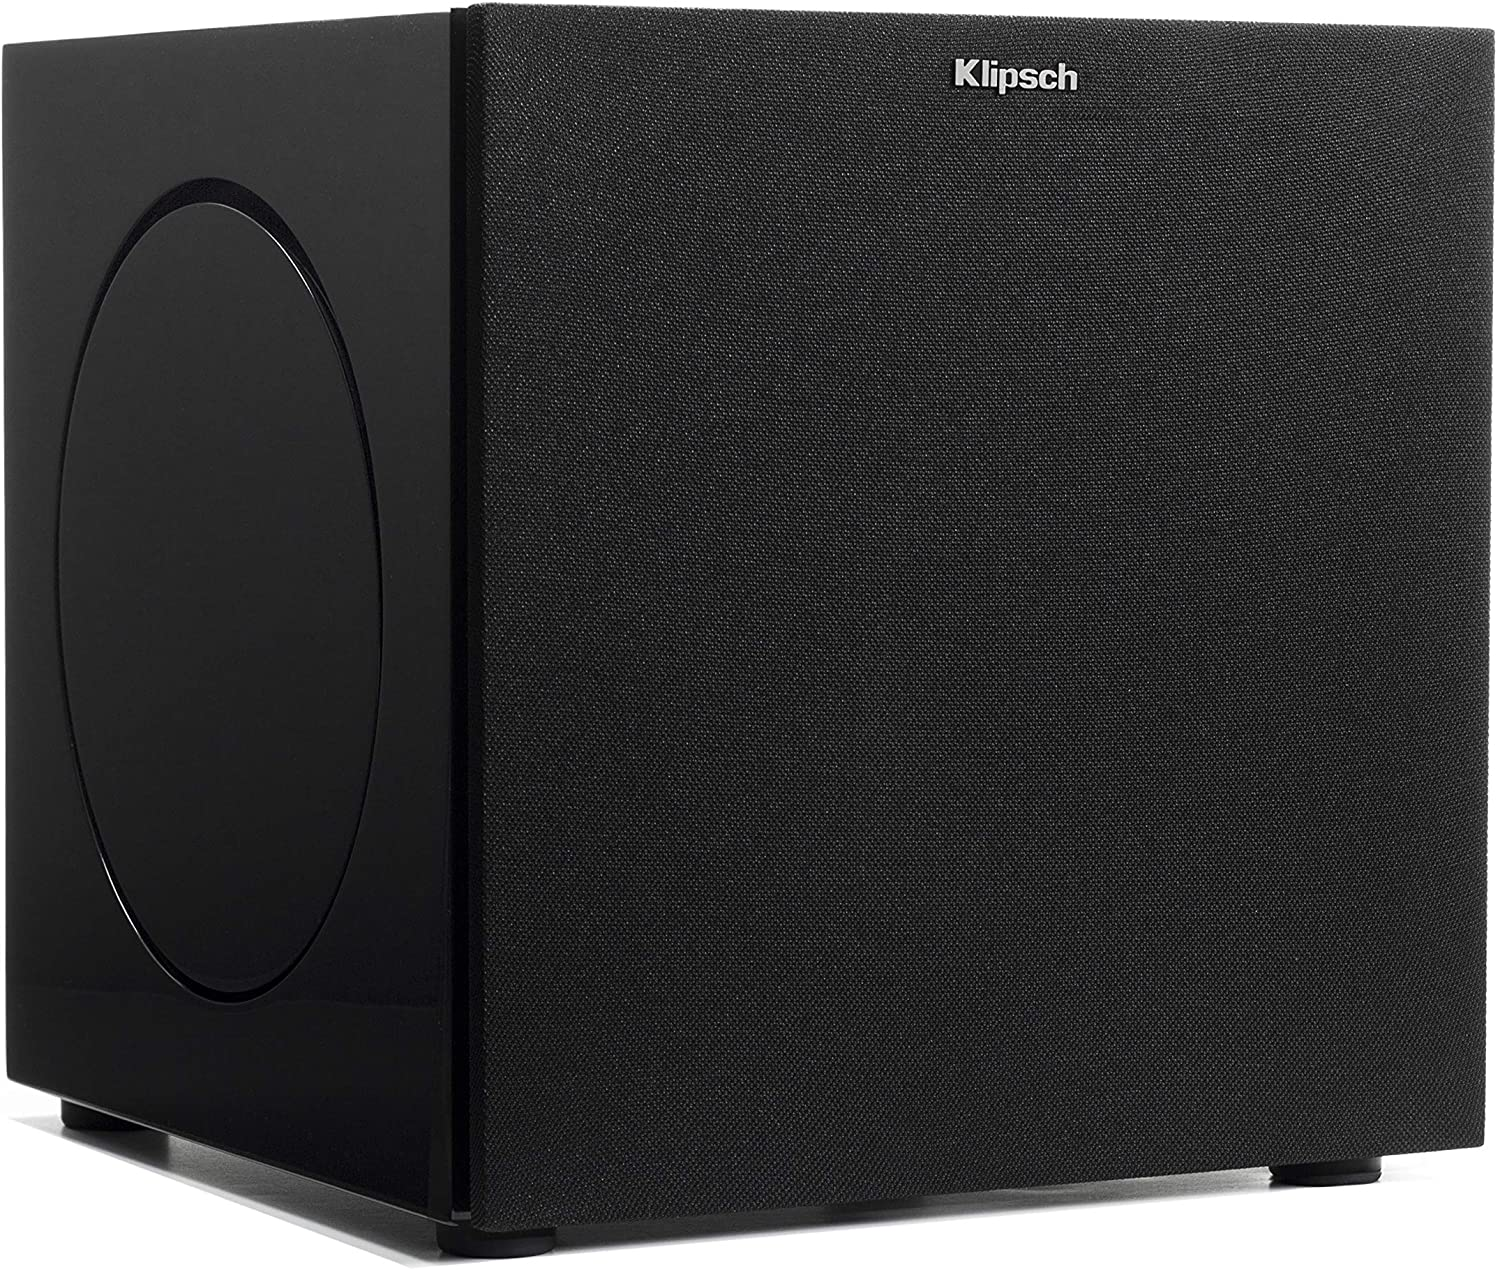 Challenge the lowest price Challenge the lowest price of Japan ☆ of Japan Klipsch C-310ASWi Subwoofer